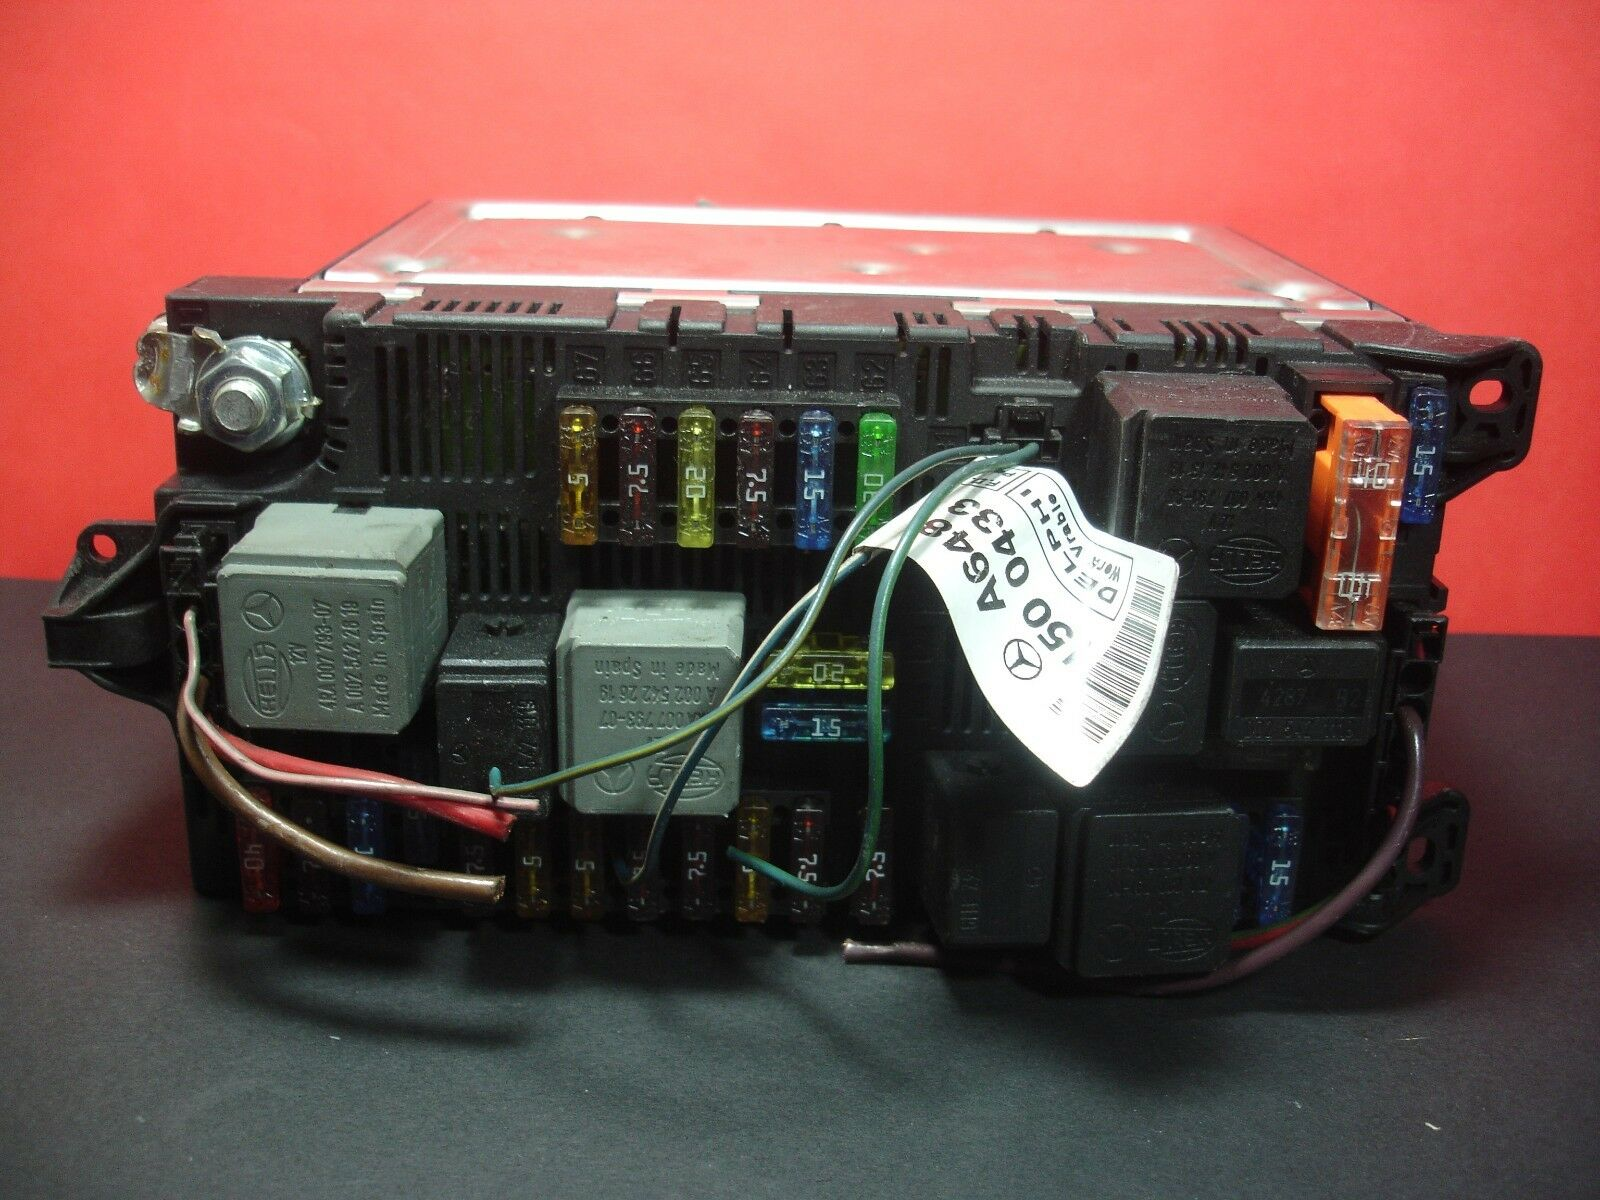 Mercedes E Class Fuse Box A2115454101 W211 Under Bonnet Sam Box 2115454101  1 of 6Only 1 available ...